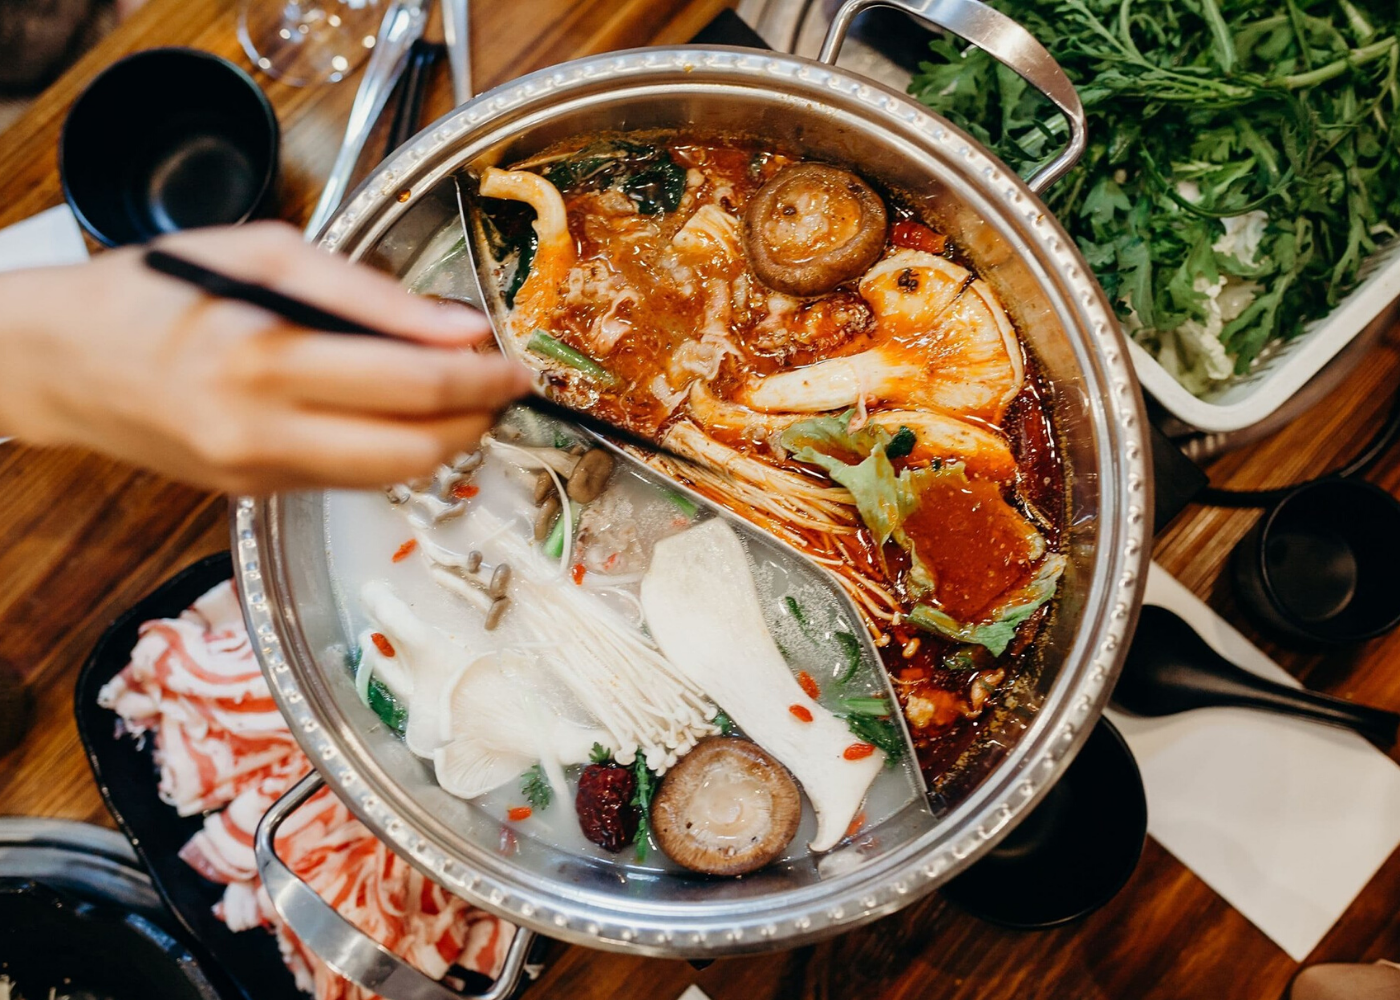 Home communal dining: Satisfy your hot pot cravings with steamboat deliveries